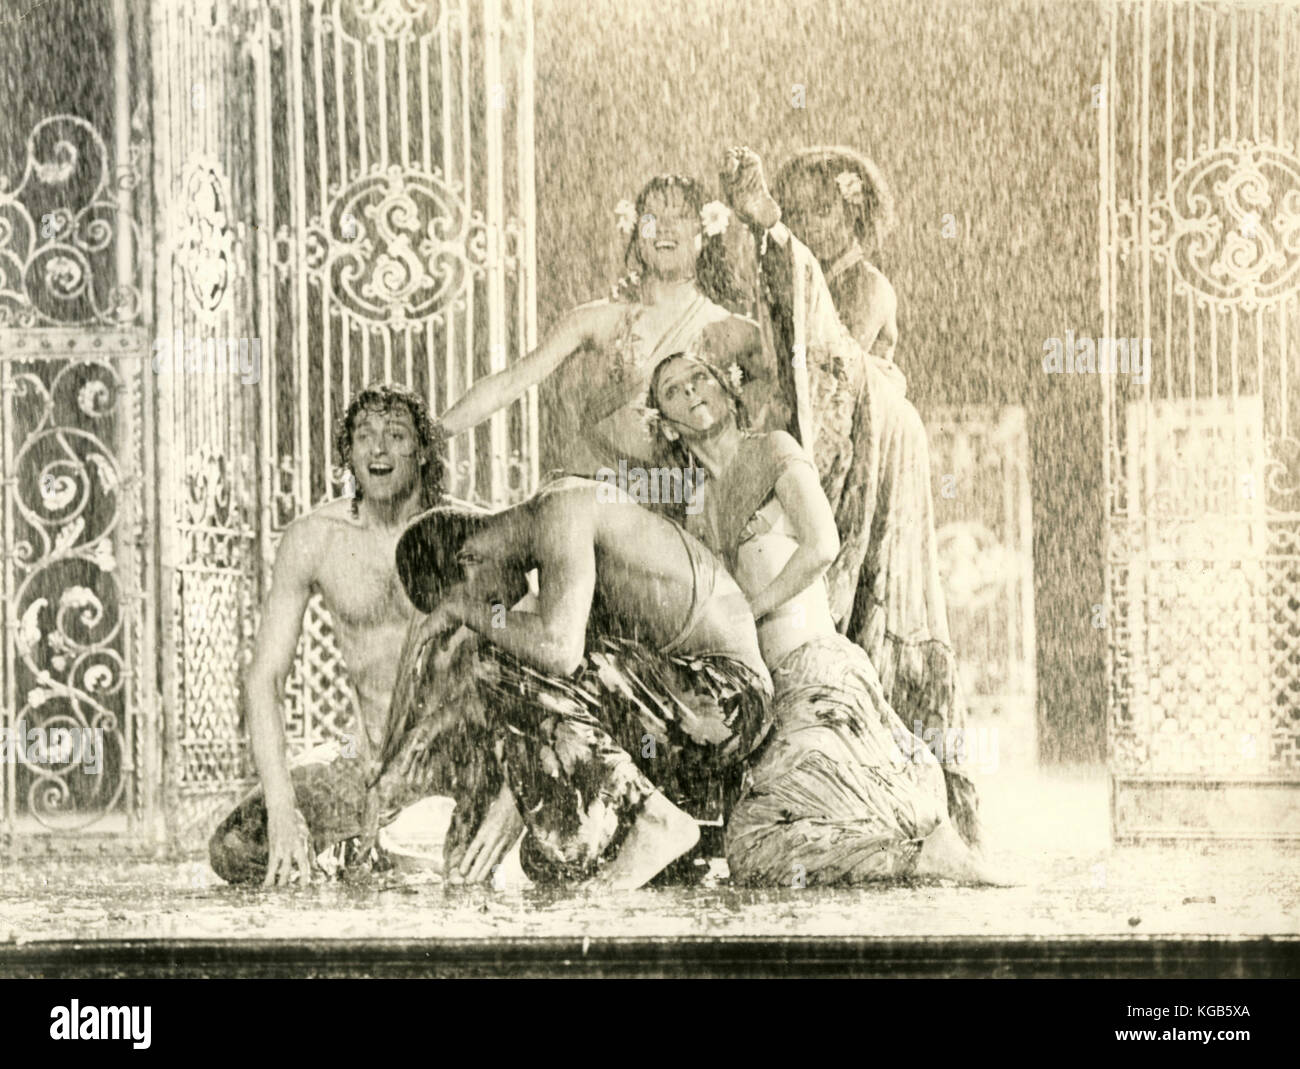 Dancers in a still from the movie Hair, 1979 - Stock Image